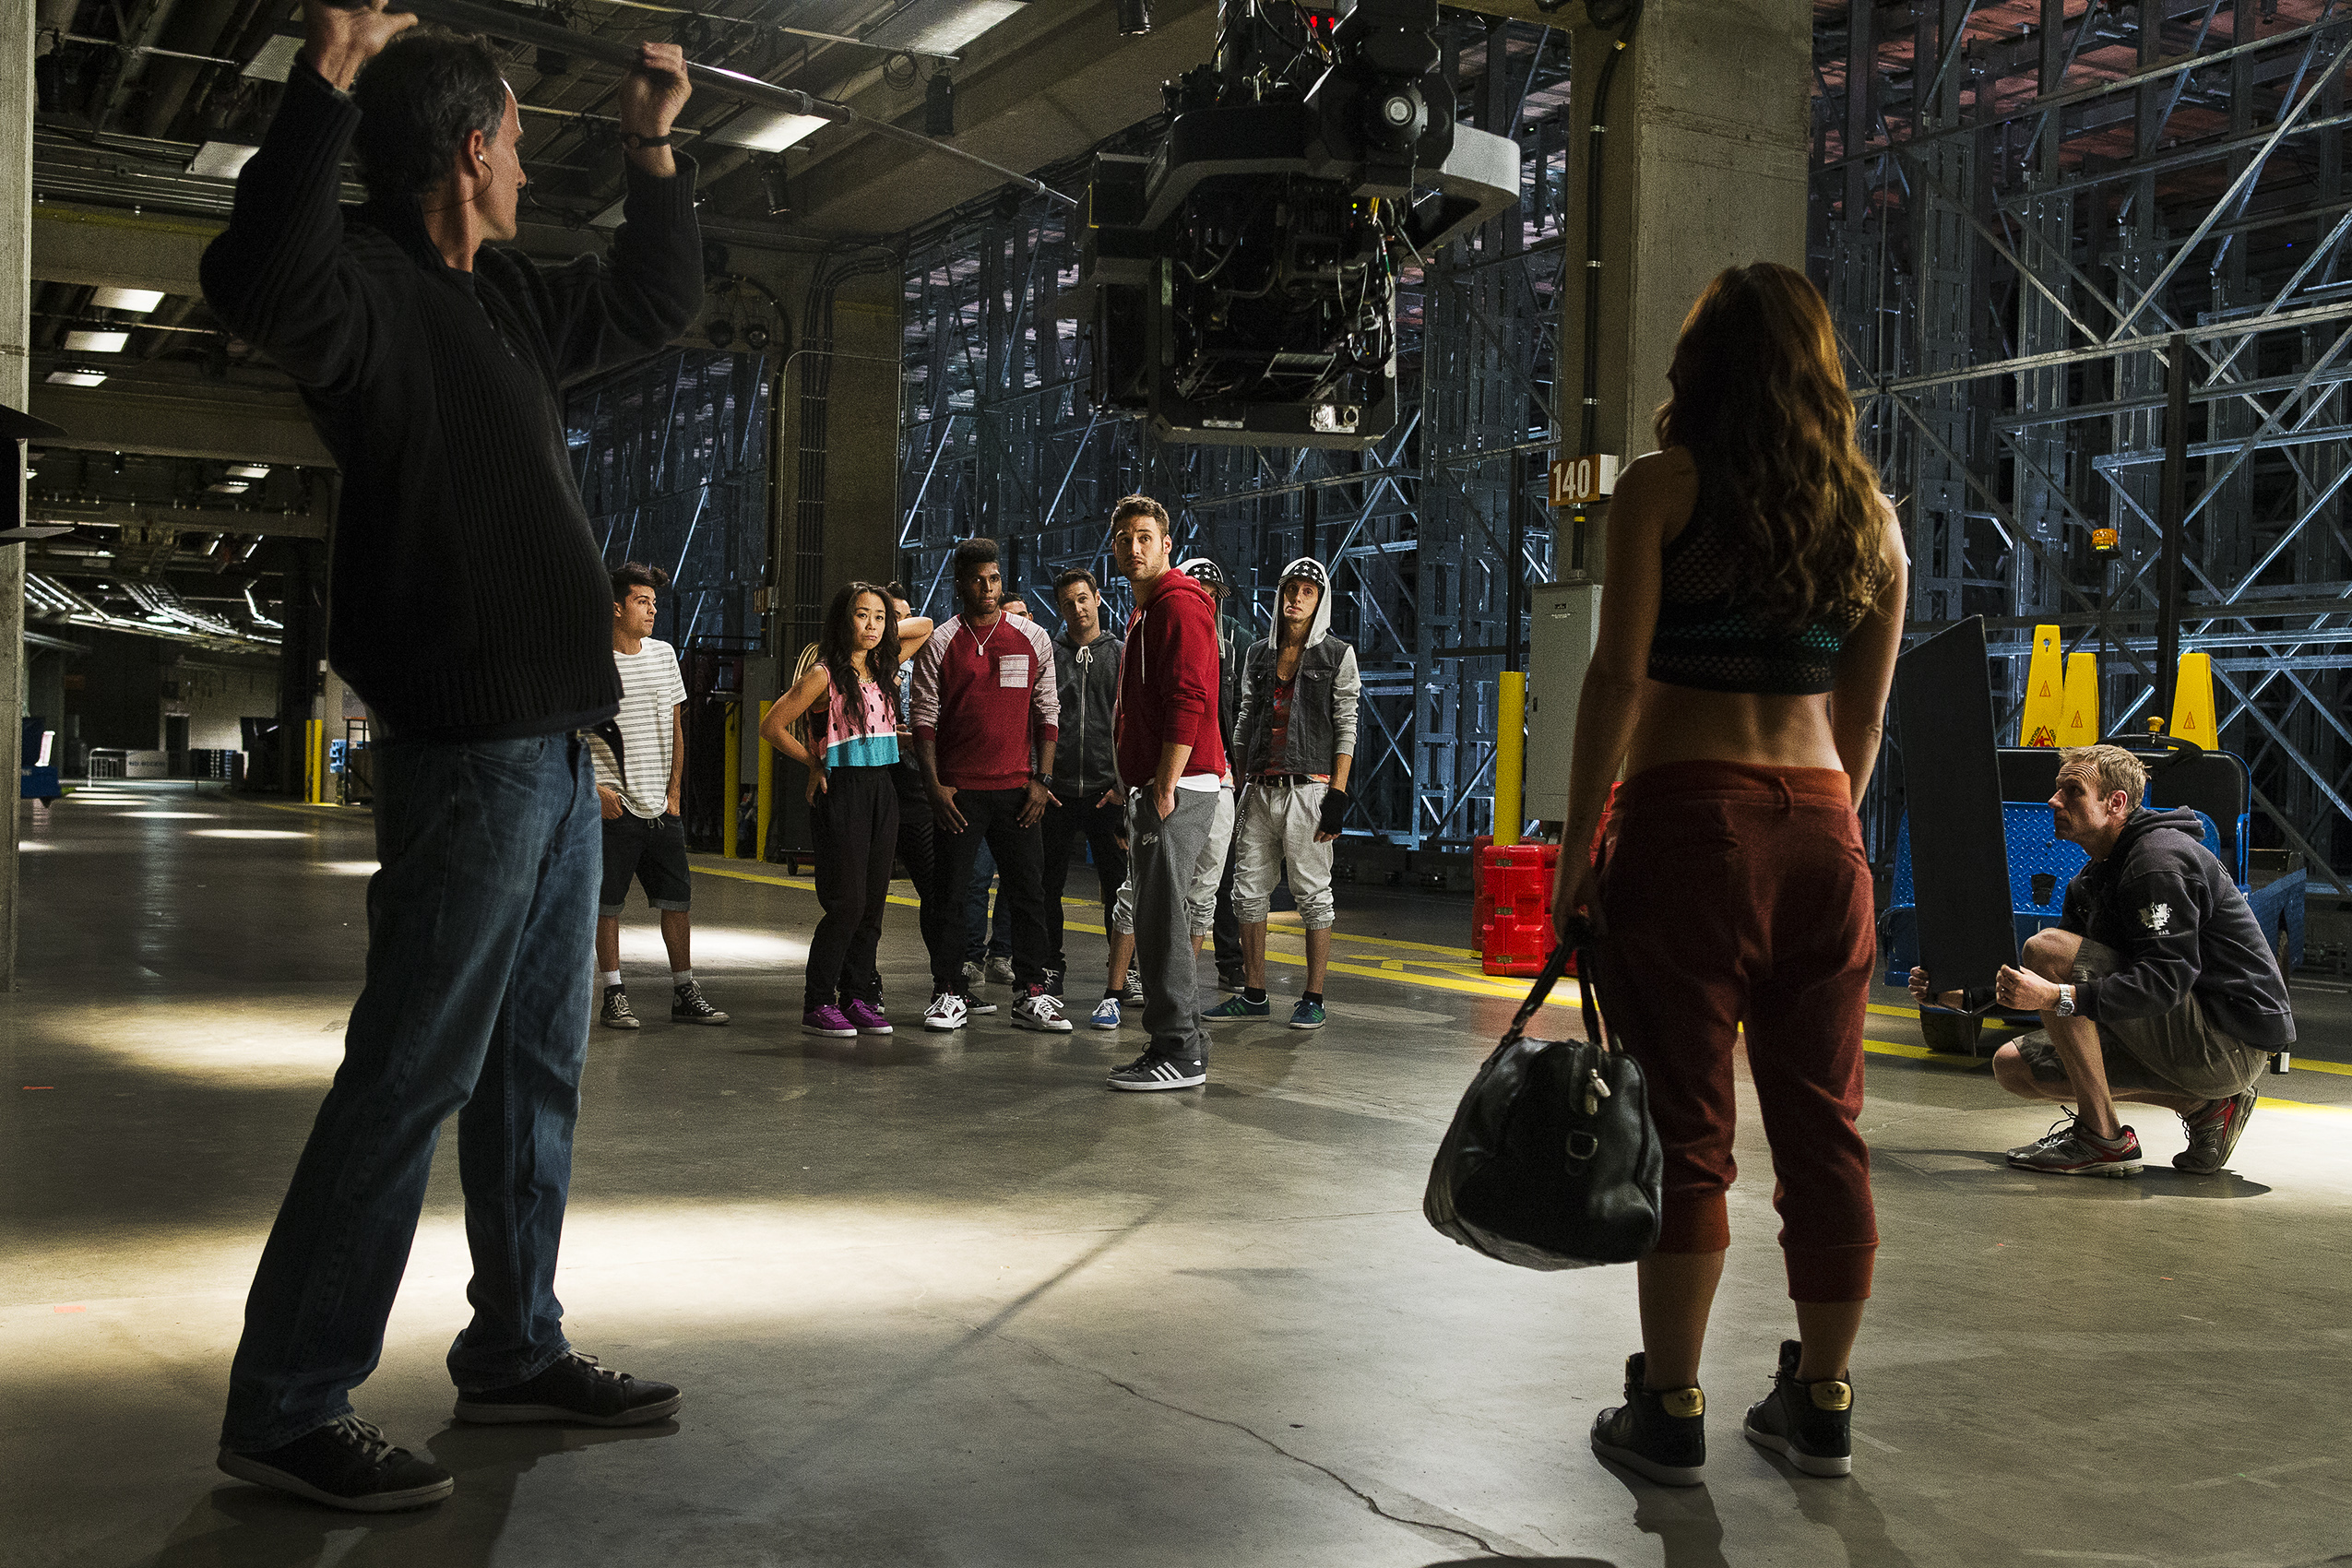 STEP UP 5 - BTS